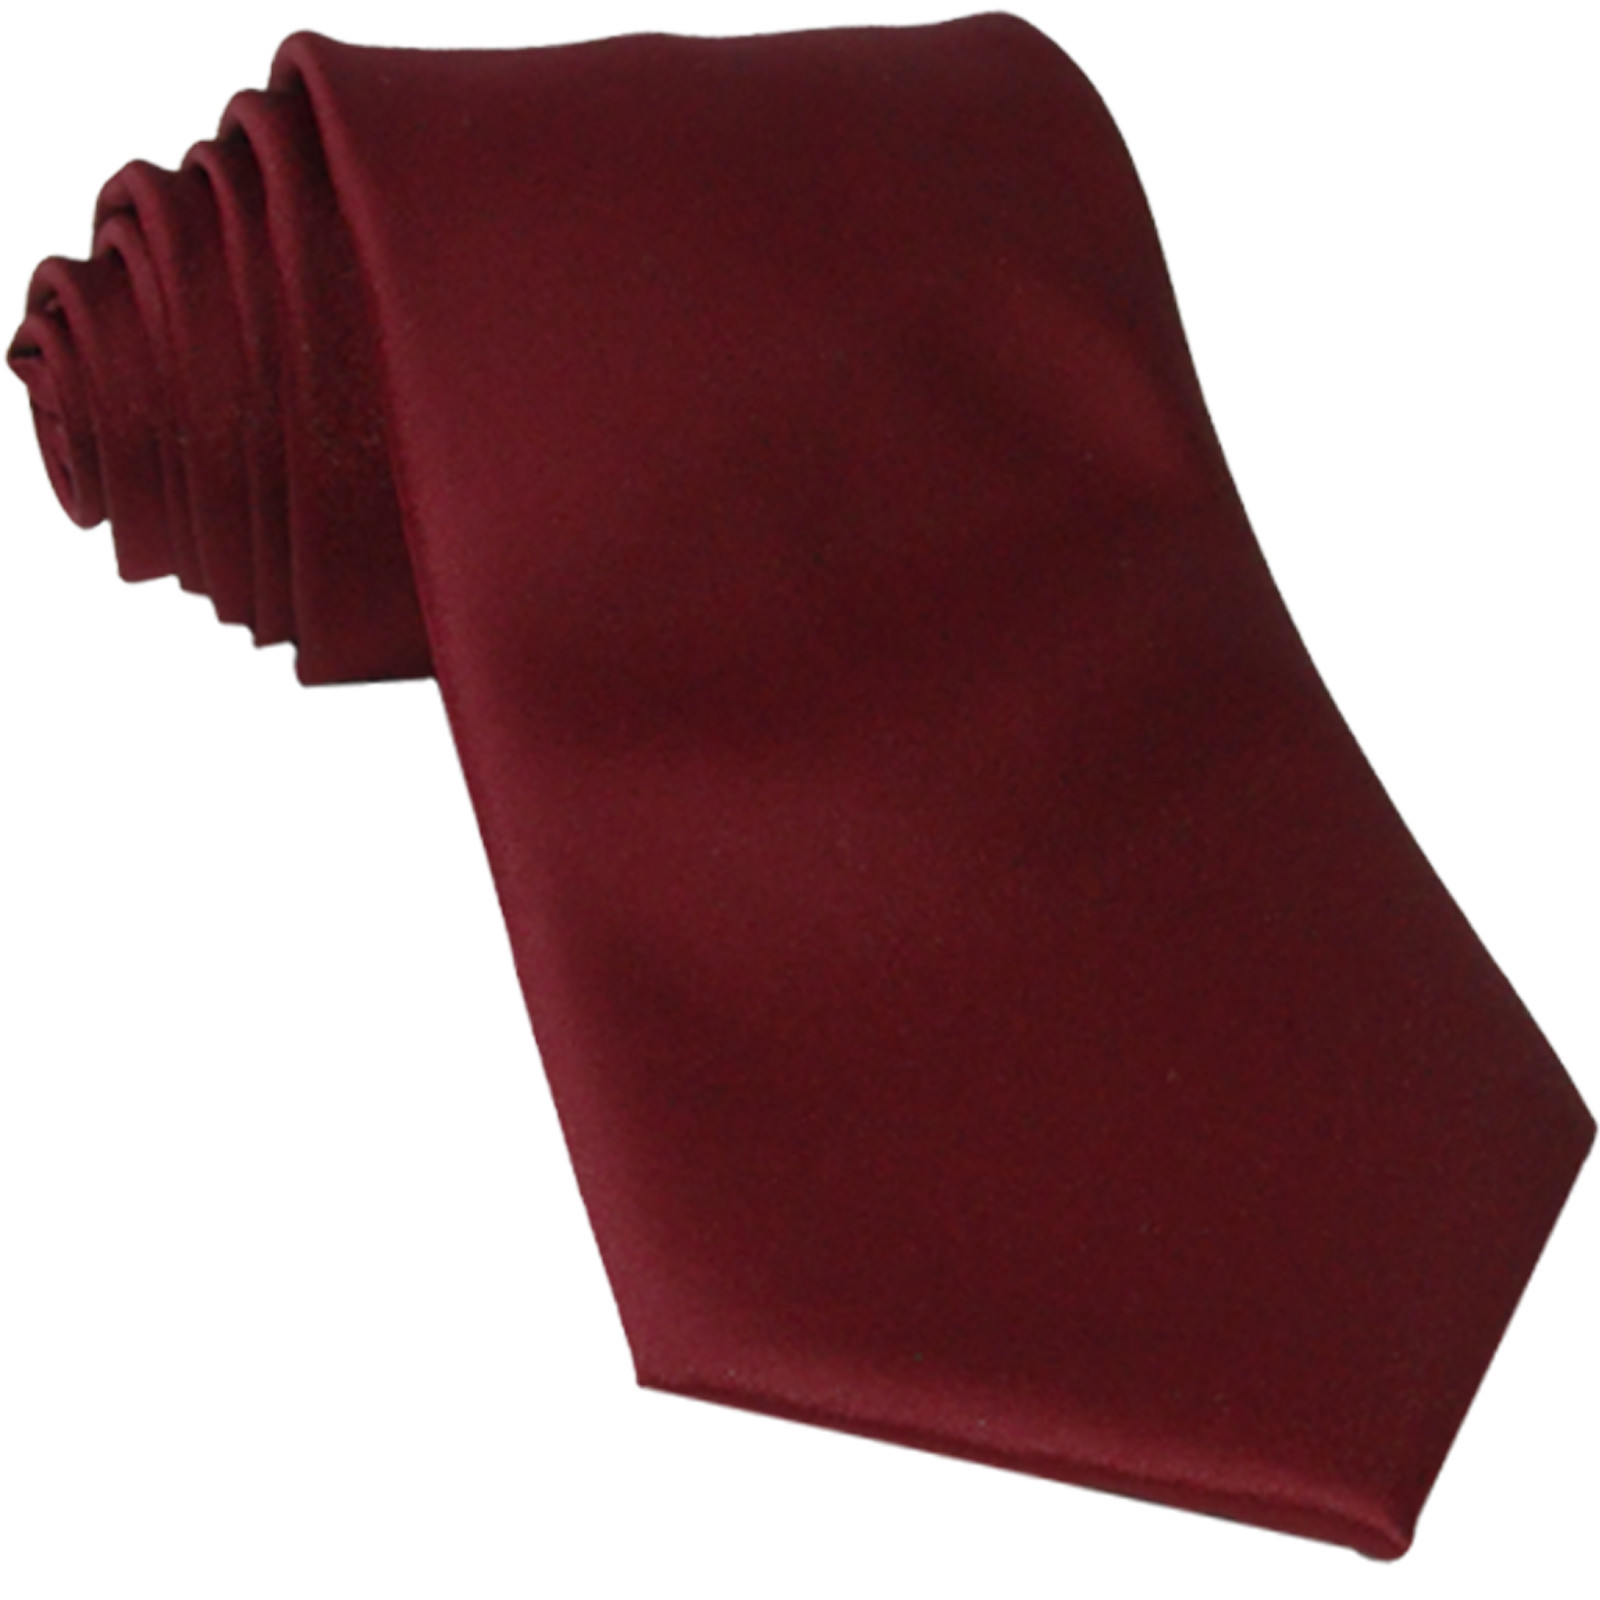 New Polyester Men's Neck Tie only solid formal wedding prom party work  Burgundy